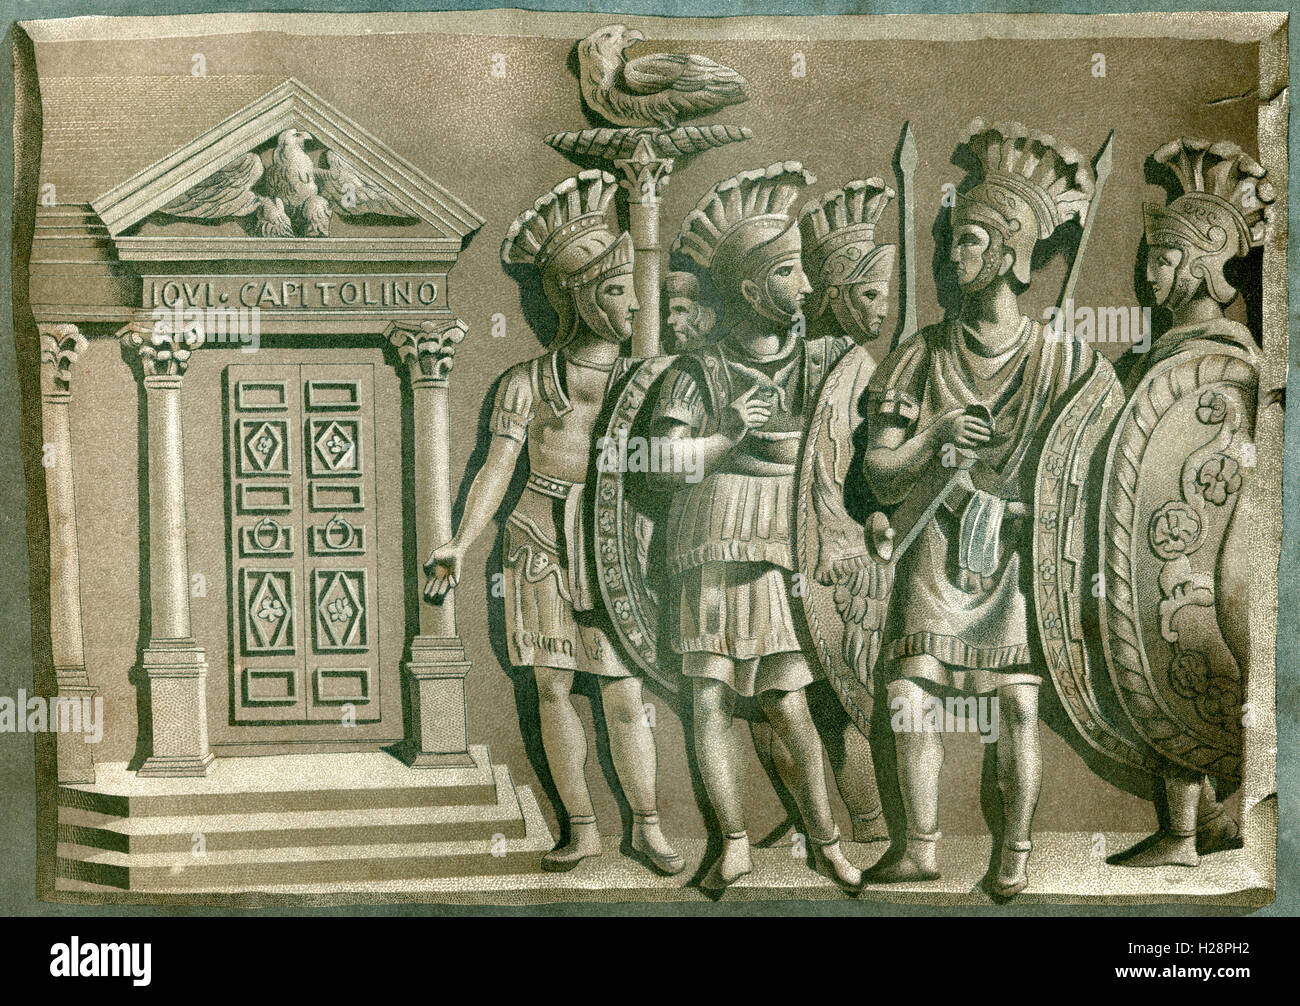 The Praetorian Guard,  a force of bodyguards used by Roman Emperors in ancient Rome. Stock Photo